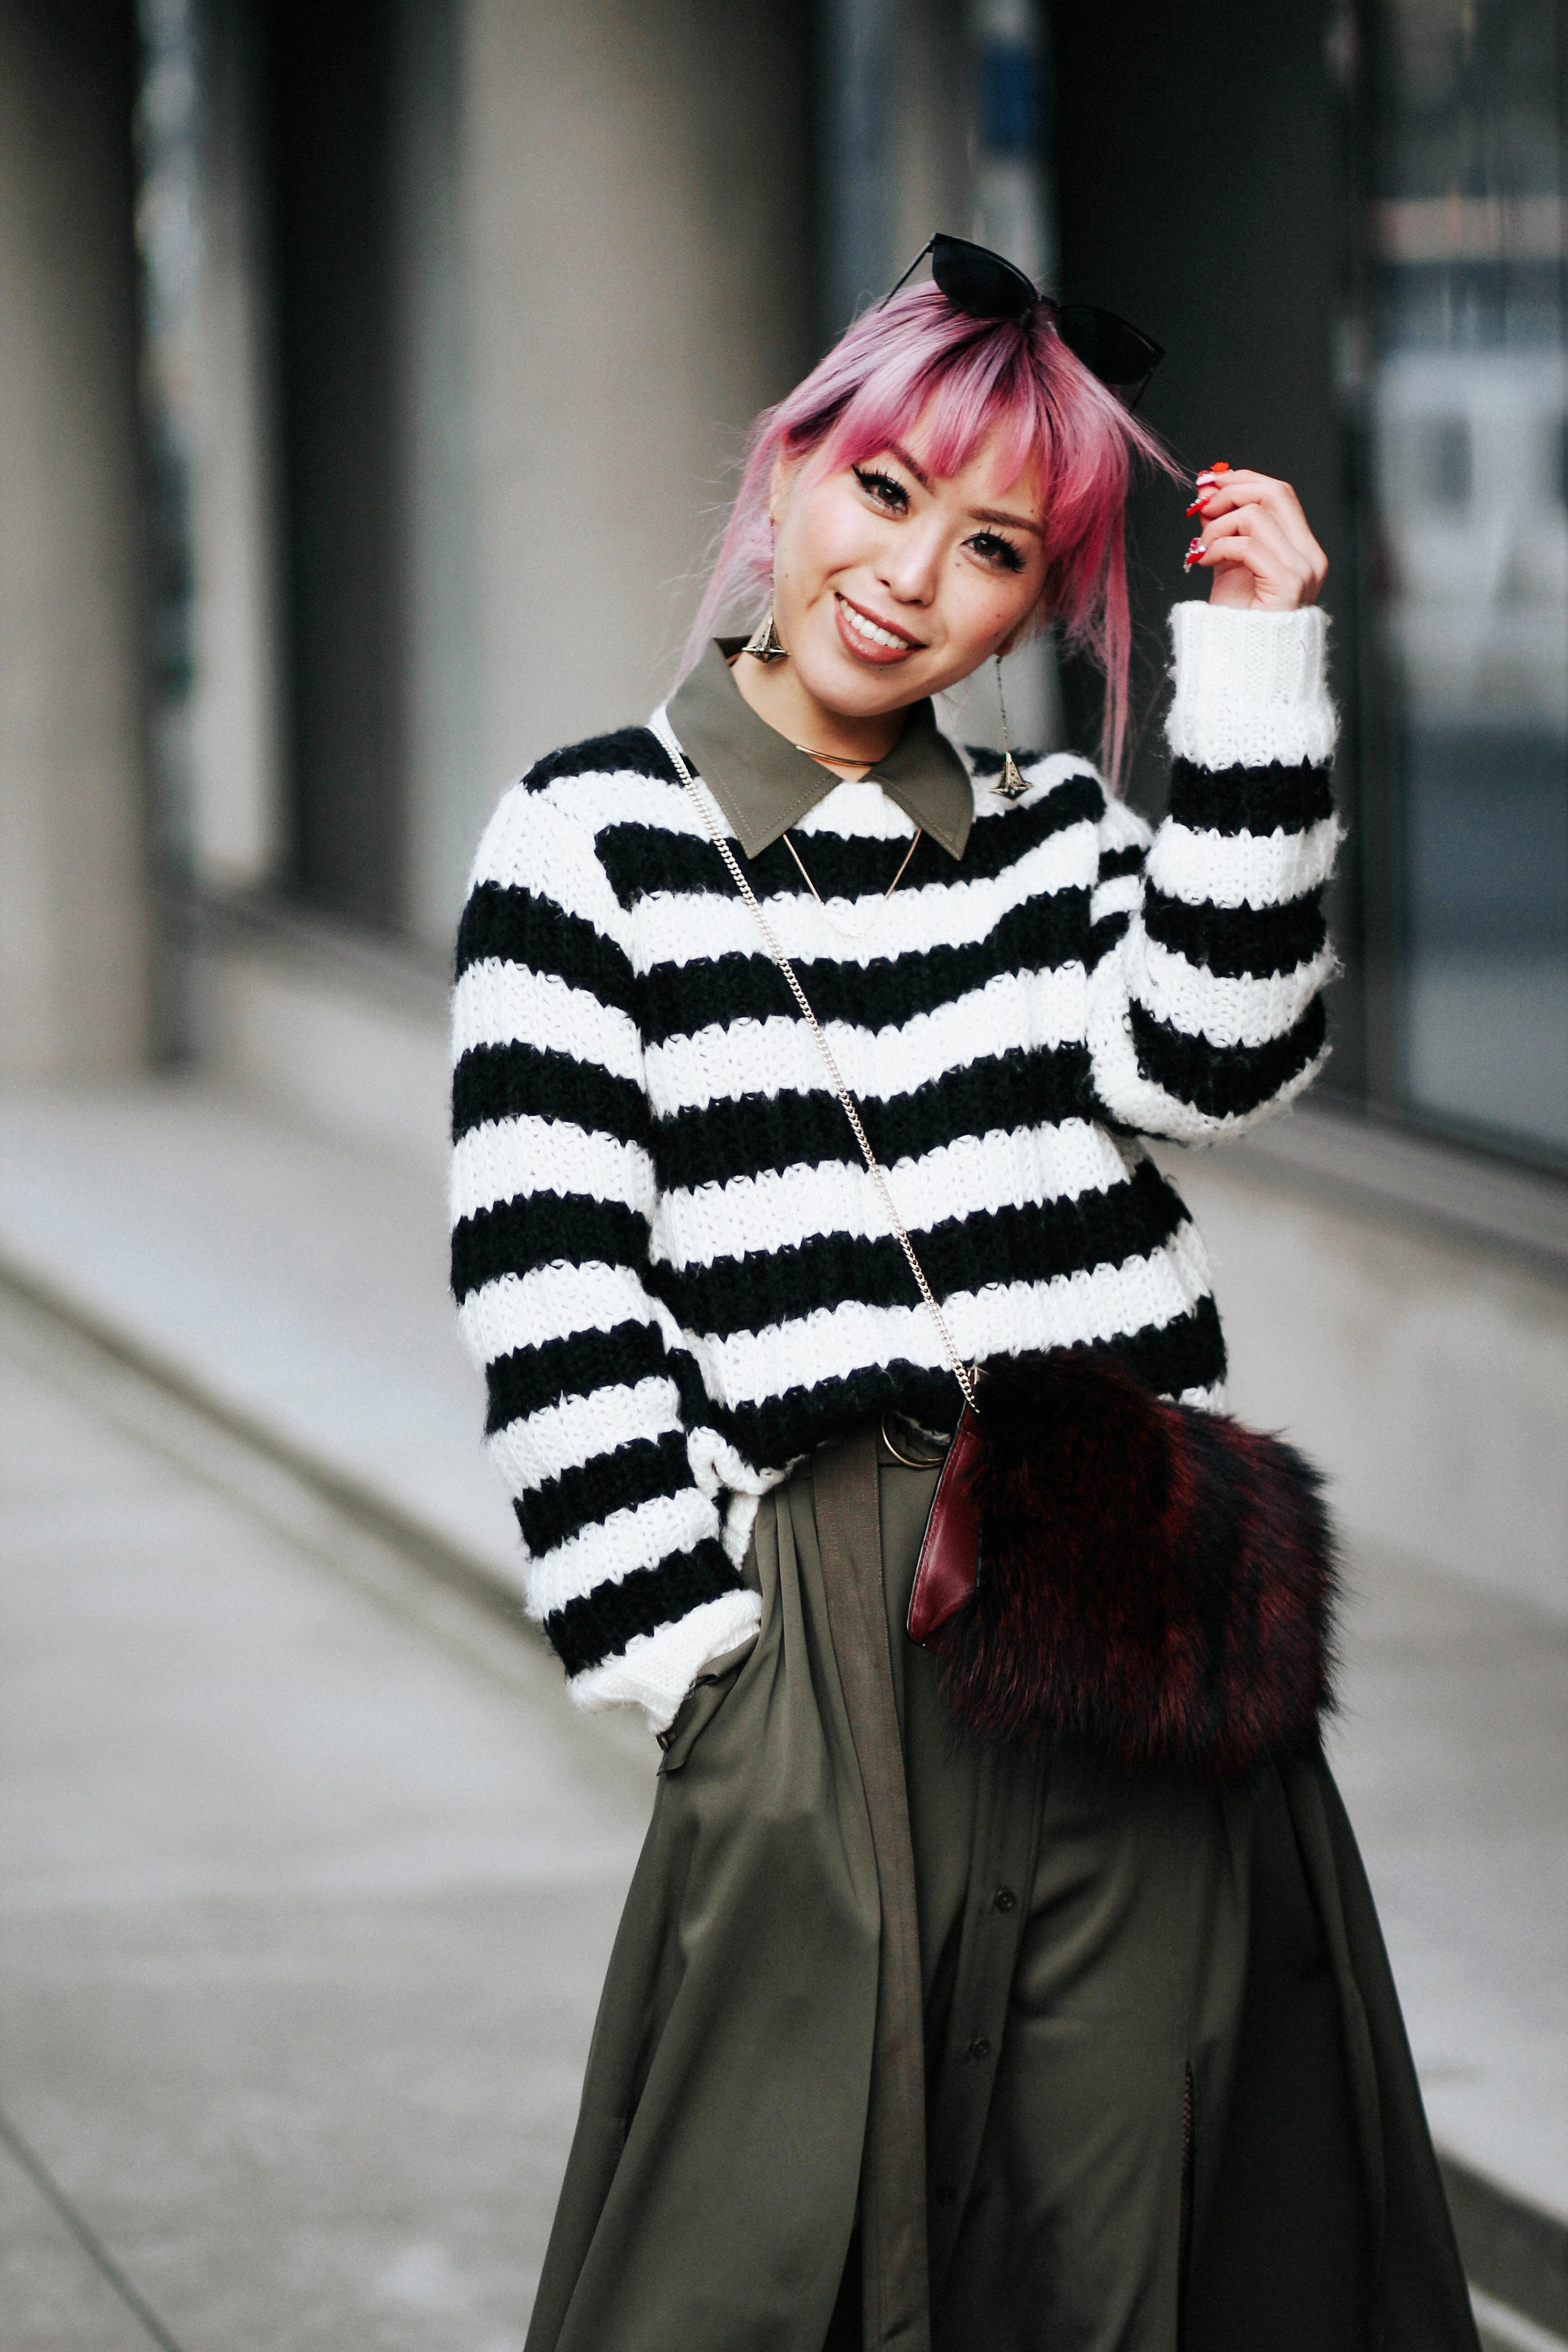 Who What Wear Striped Sweater_DVF Clarise Midi Shirt Dress_DVF Fur Bag_Kendra Scott Diana Shoulder Duster Earrings In Antique Brass_Amazon Fishnet Tights_ZARA ASYMMETRIC LEATHER HIGH HEEL SHOES_Aikas Love Closet_Seattle Fashion Blogger_japanese_Pink Hair 8